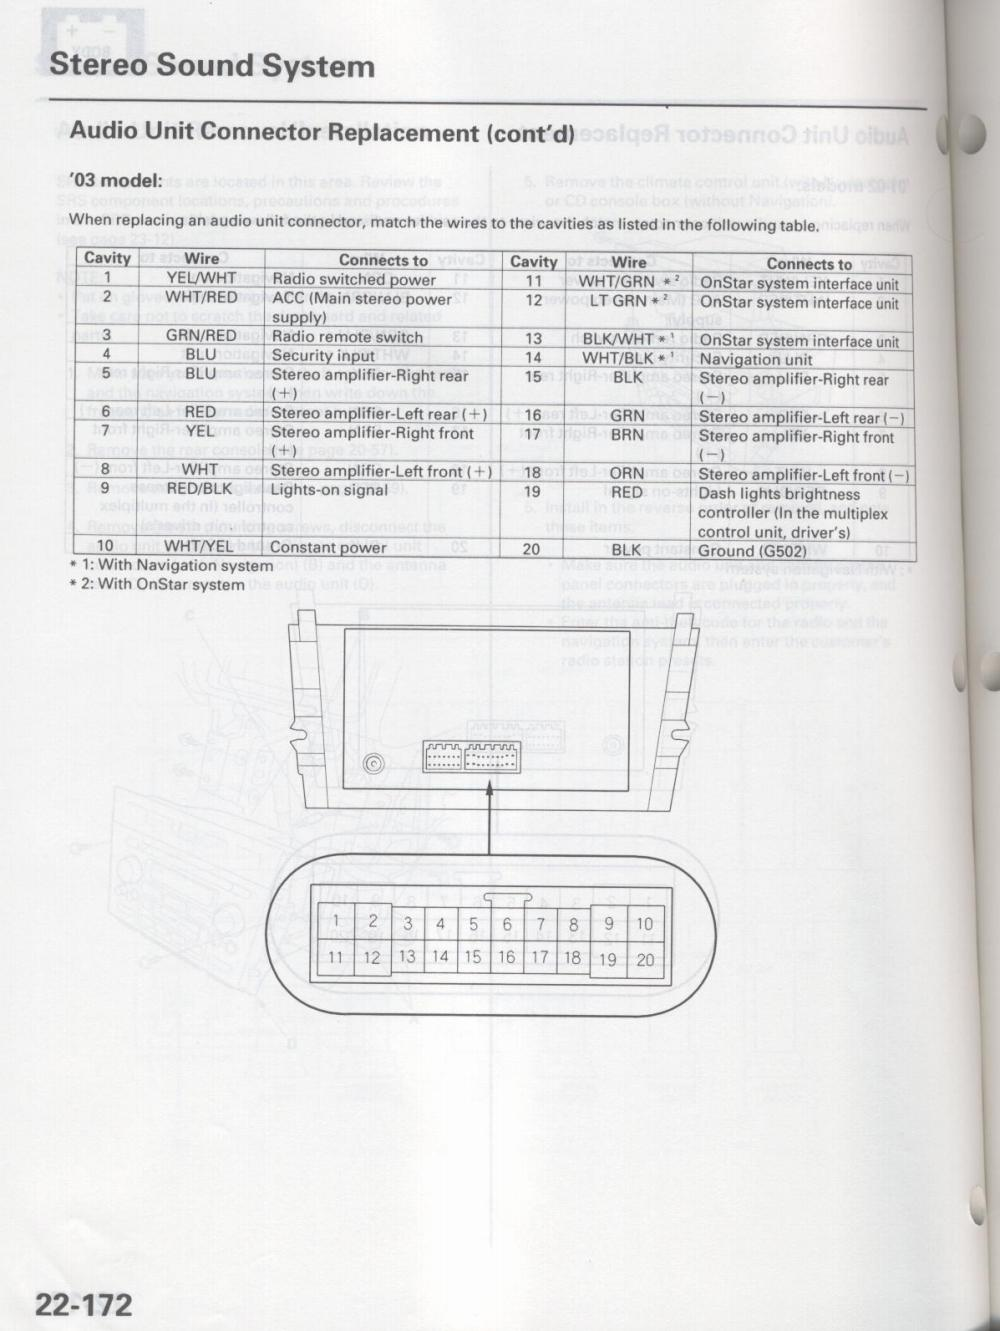 acura tl speaker wiring diagram use case visio 2010 shapes 20 schwabenschamanen de tsx radio library rh 89 hermandadredencion eu 2004 stereo